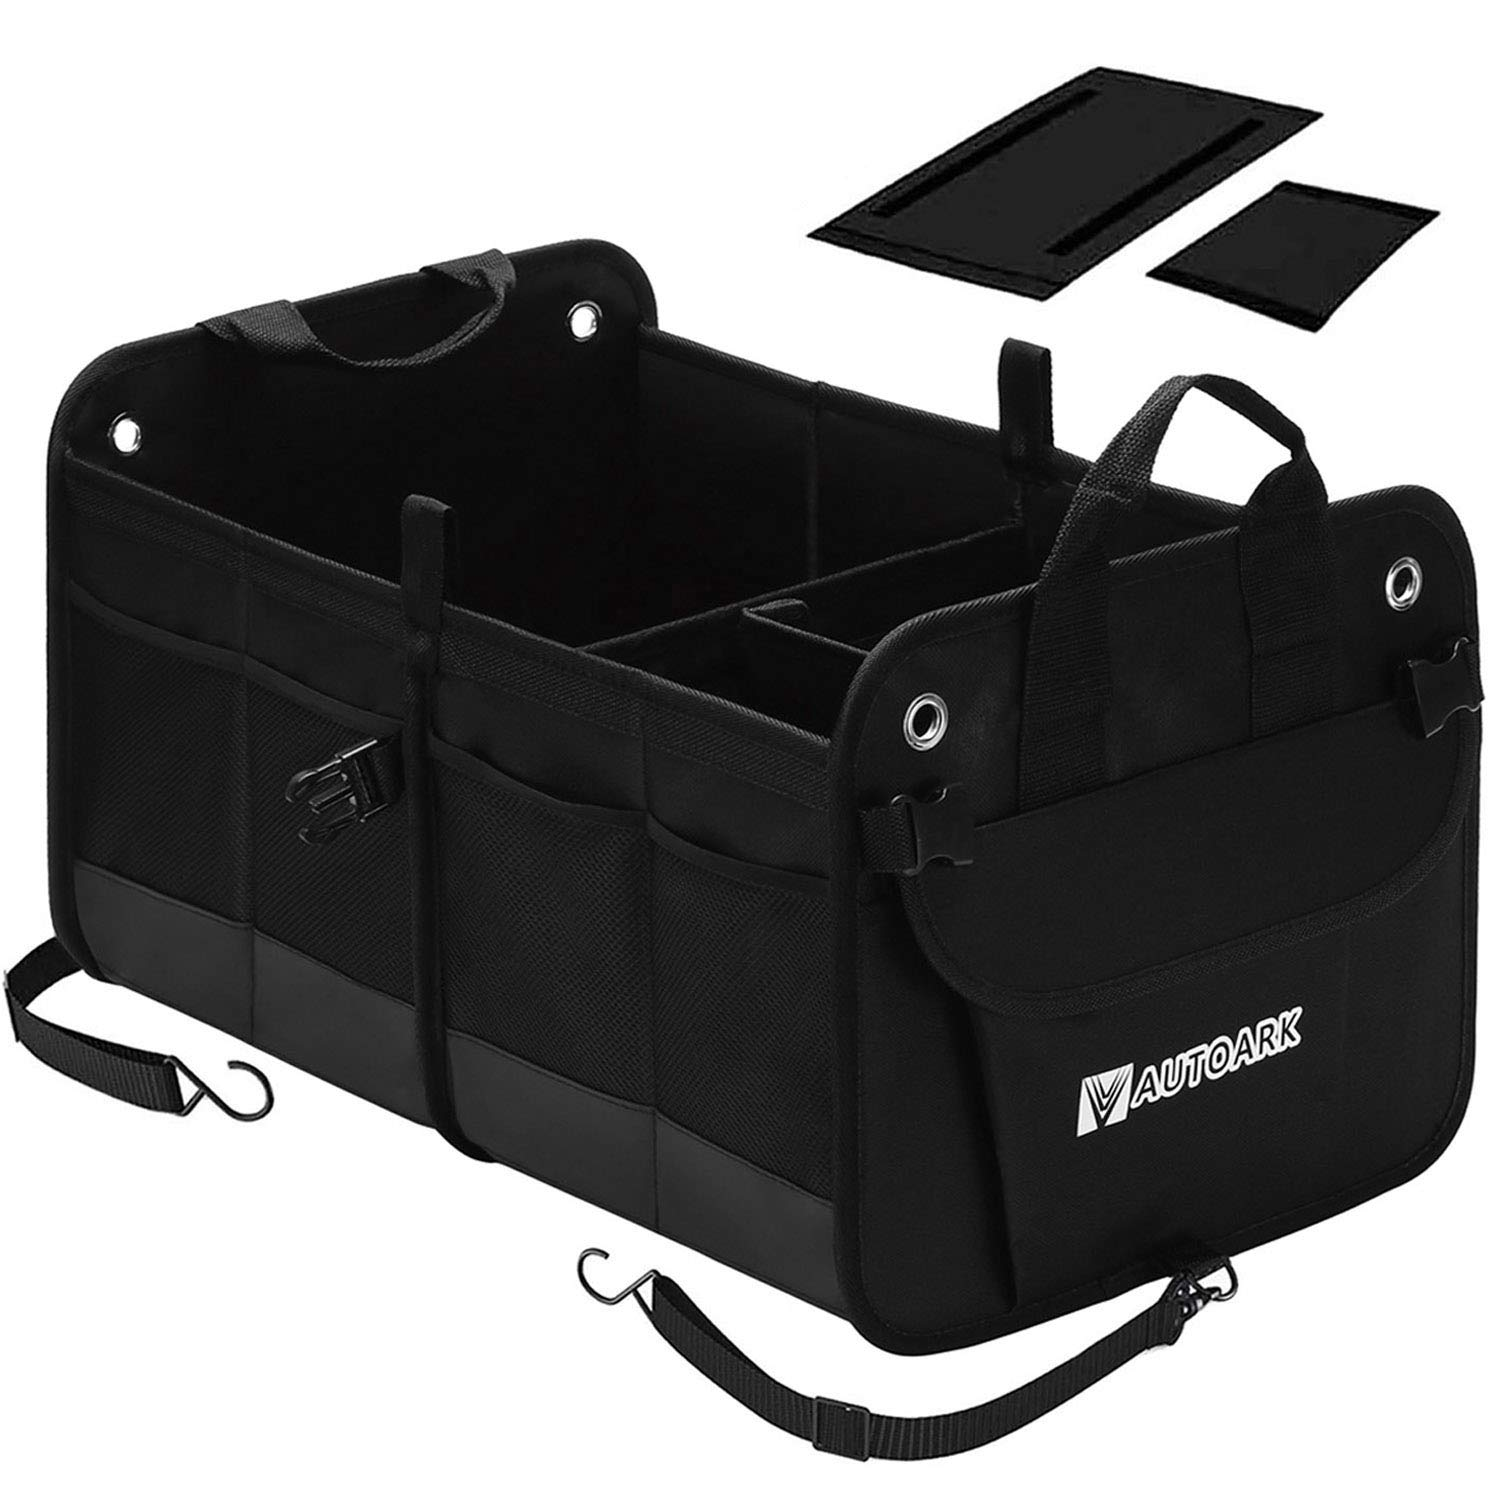 AUTOARK Multipurpose Car SUV Trunk Organizer, Durable Collapsible Adjustable Compartments Cargo Storage, AK-102